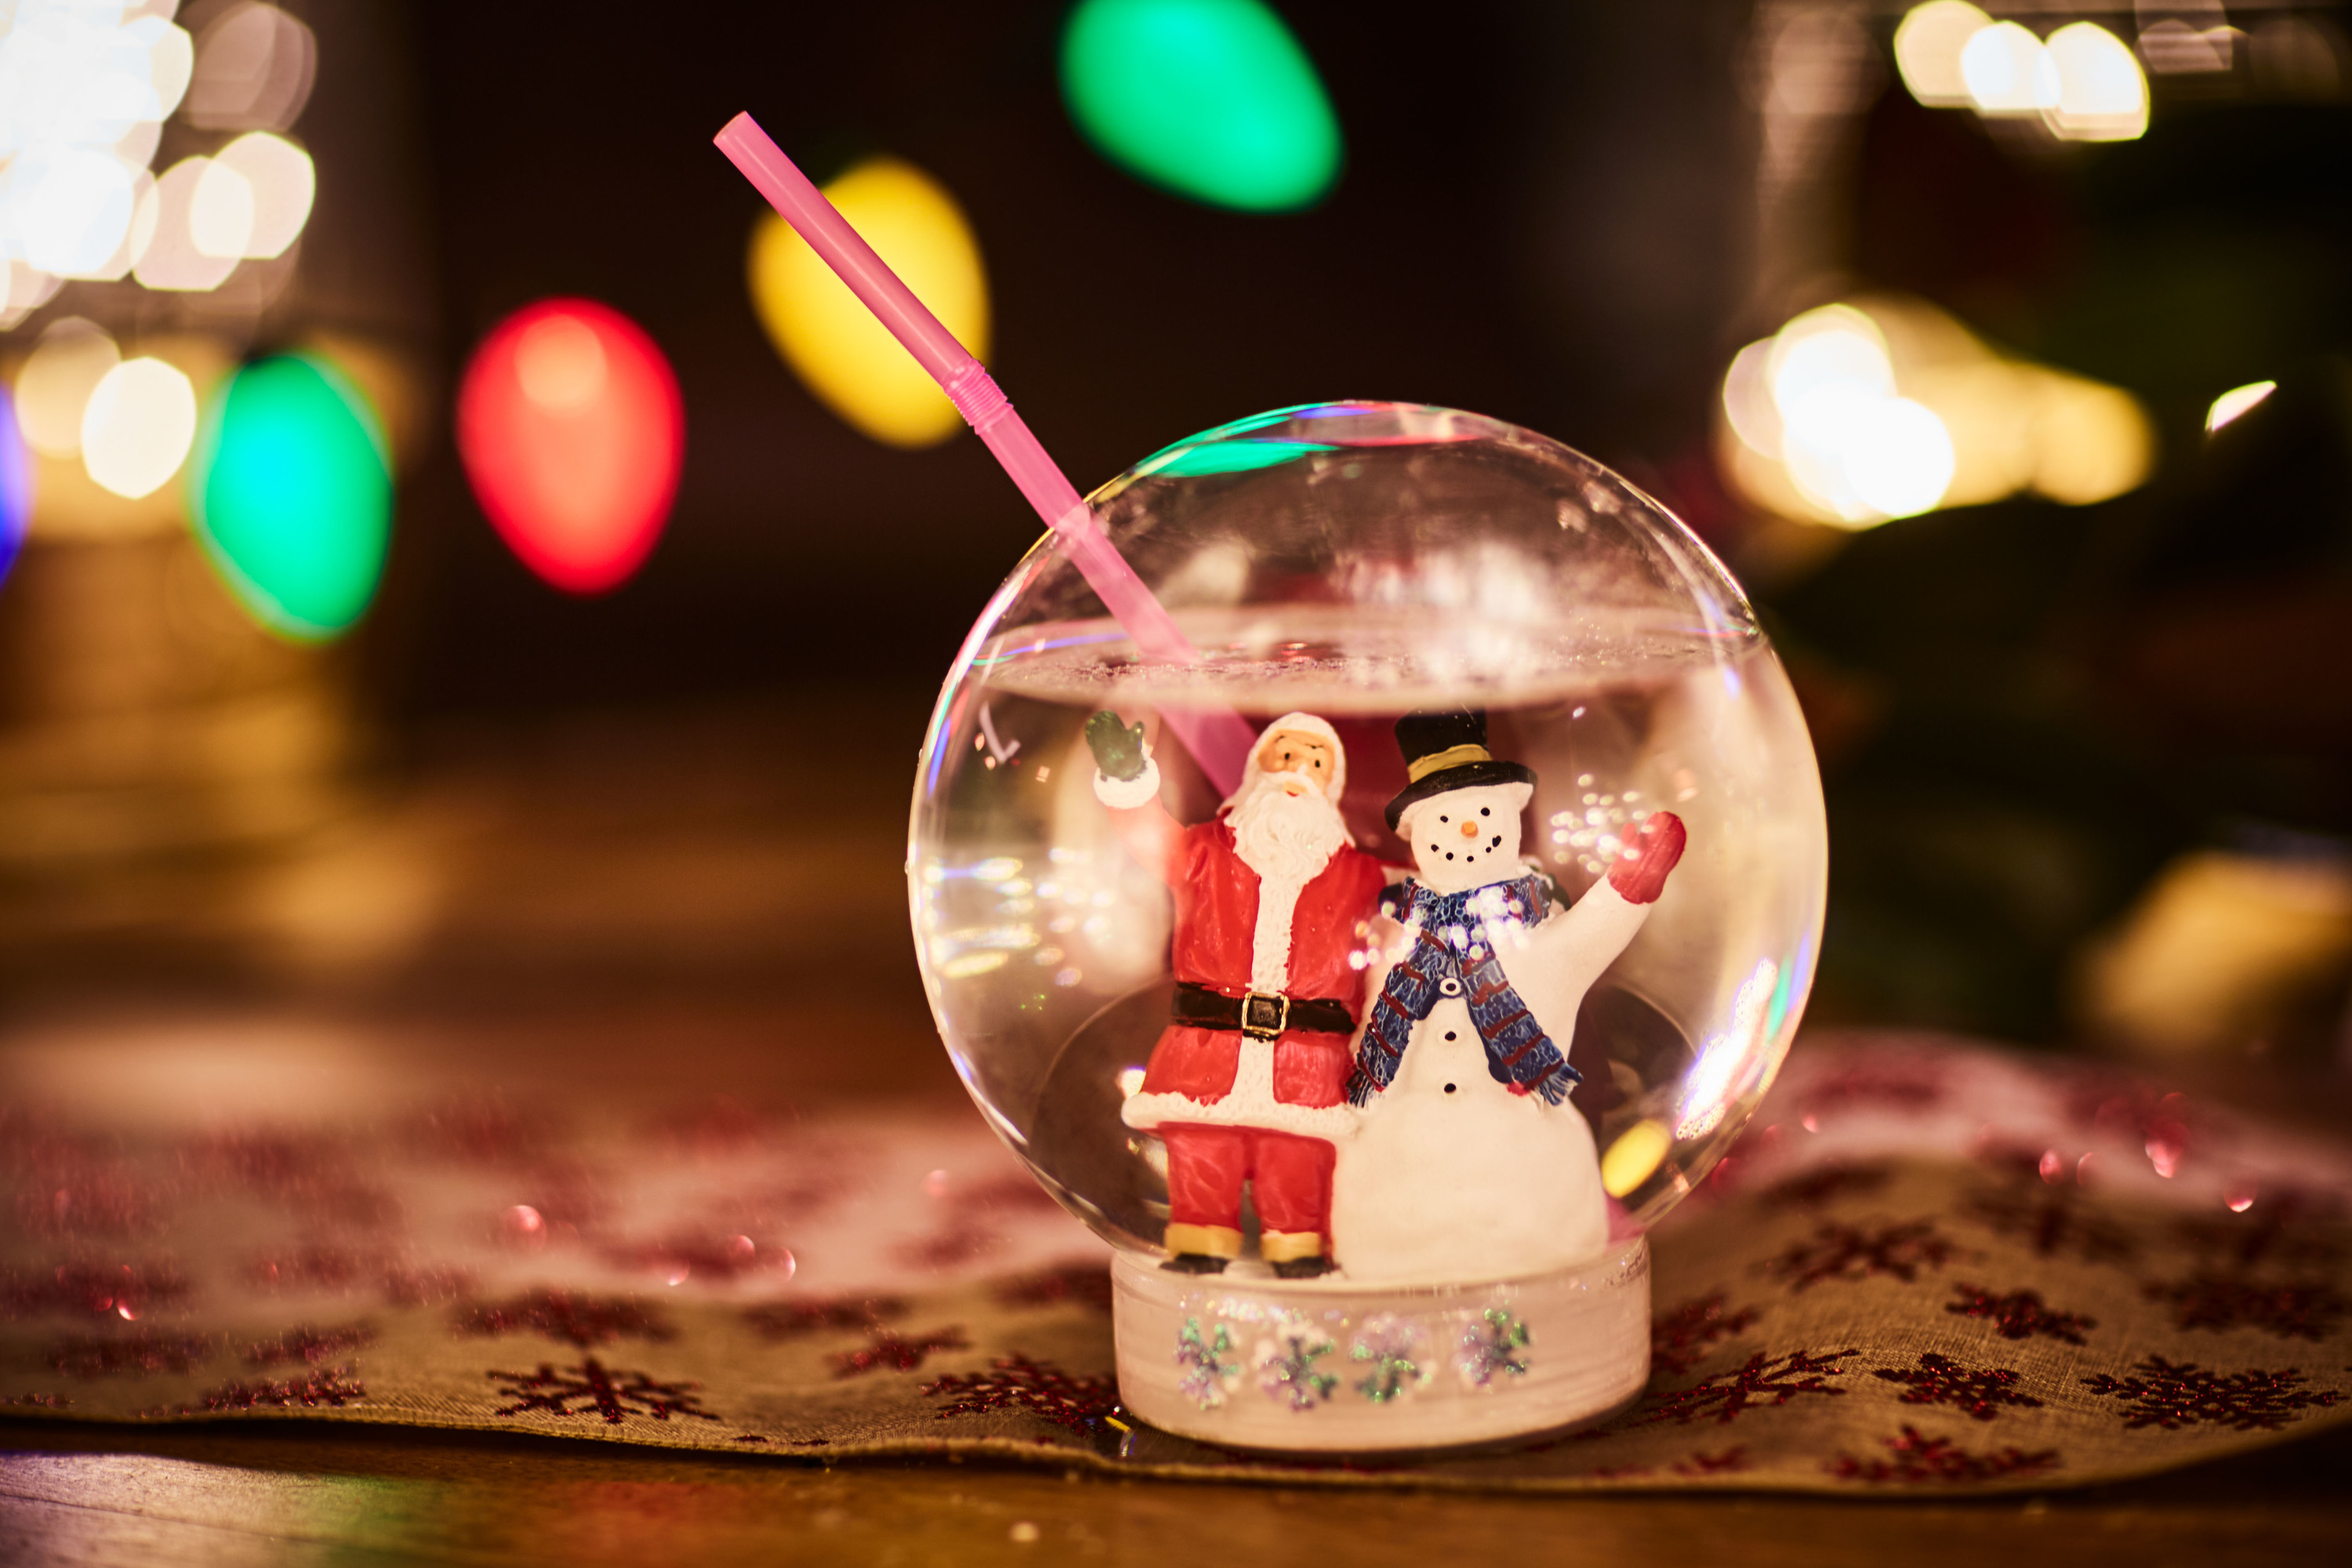 Drink a cocktail from a snow globe at this holiday pop-up bar